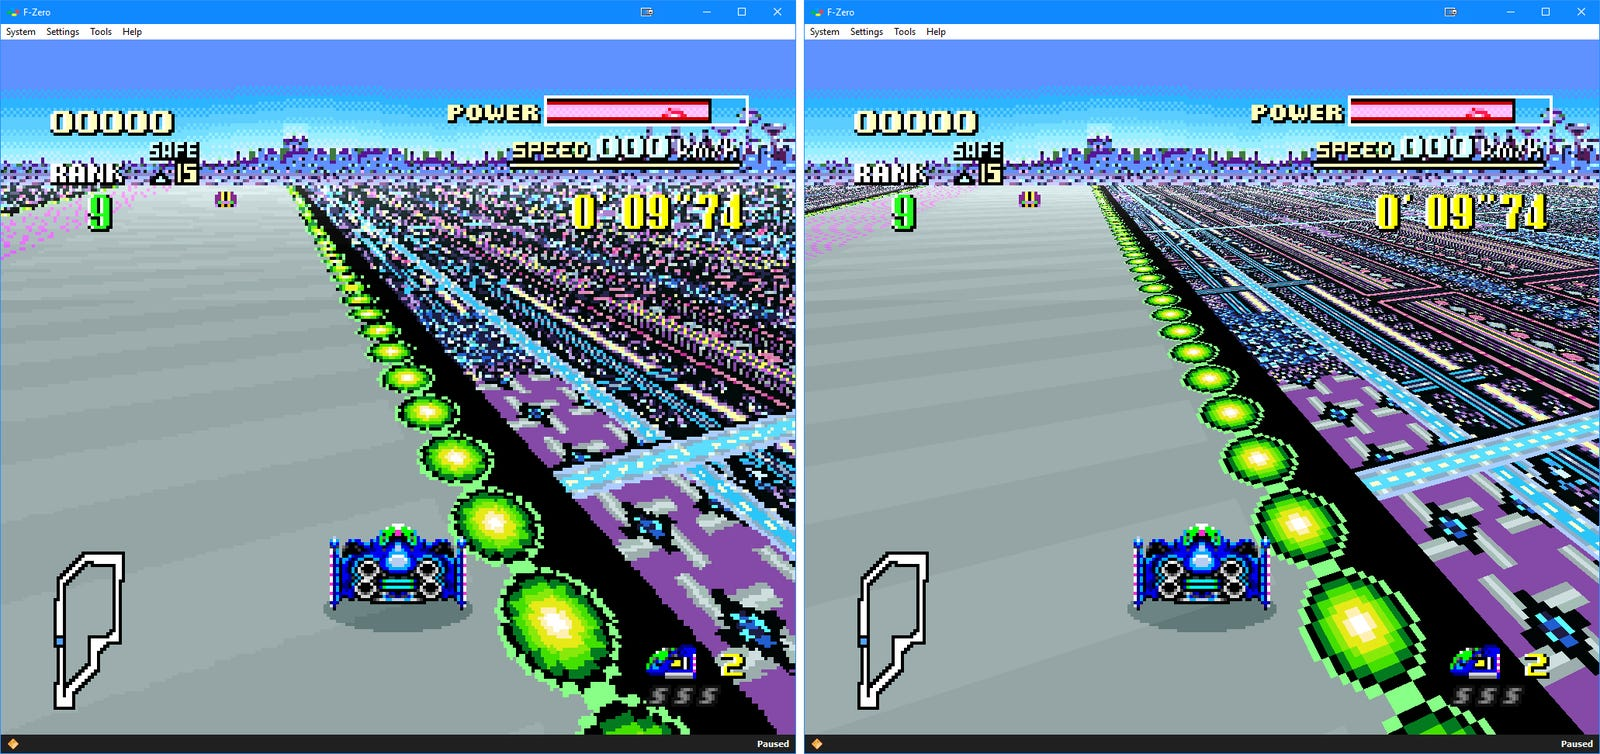 F-Zero's facelift suits it well.